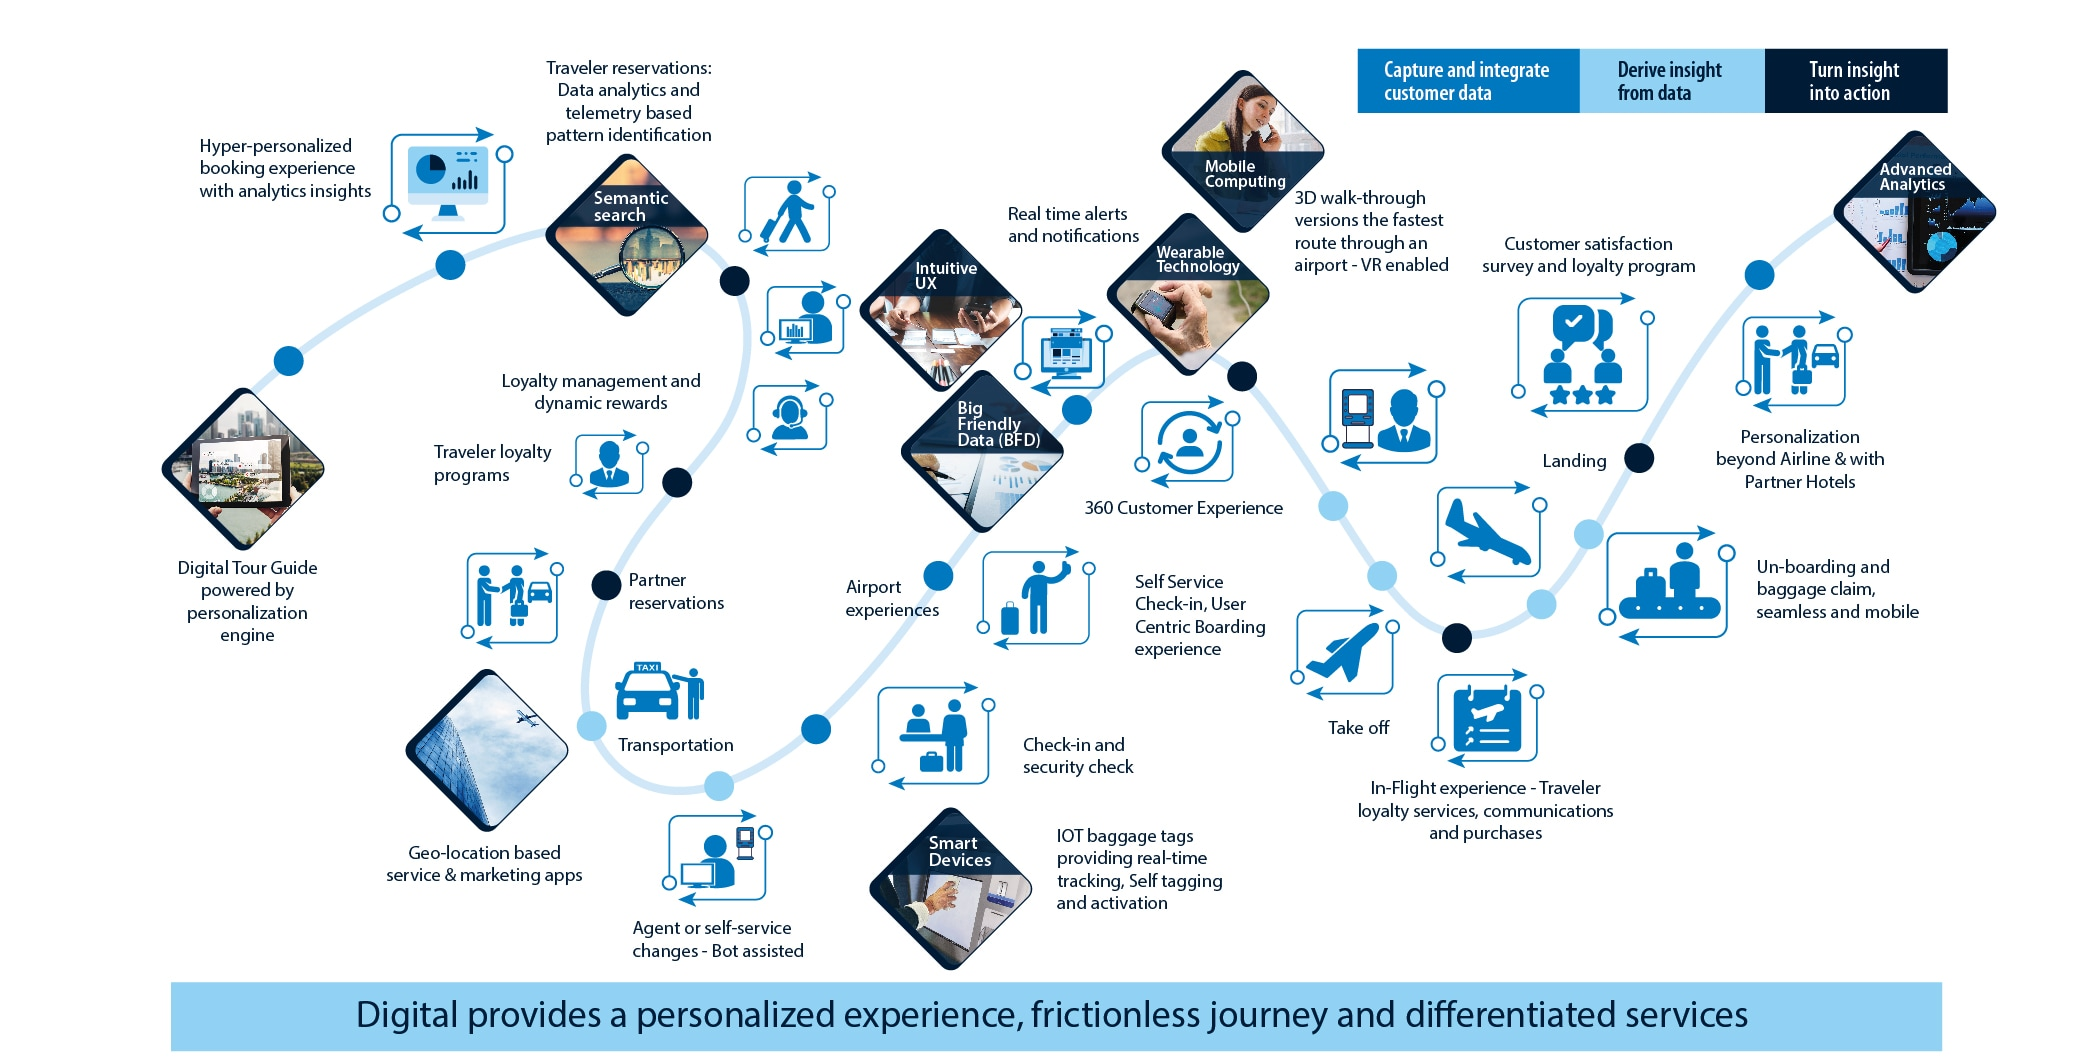 Digital provides a personalized experience, frictionless journey and differentiated services